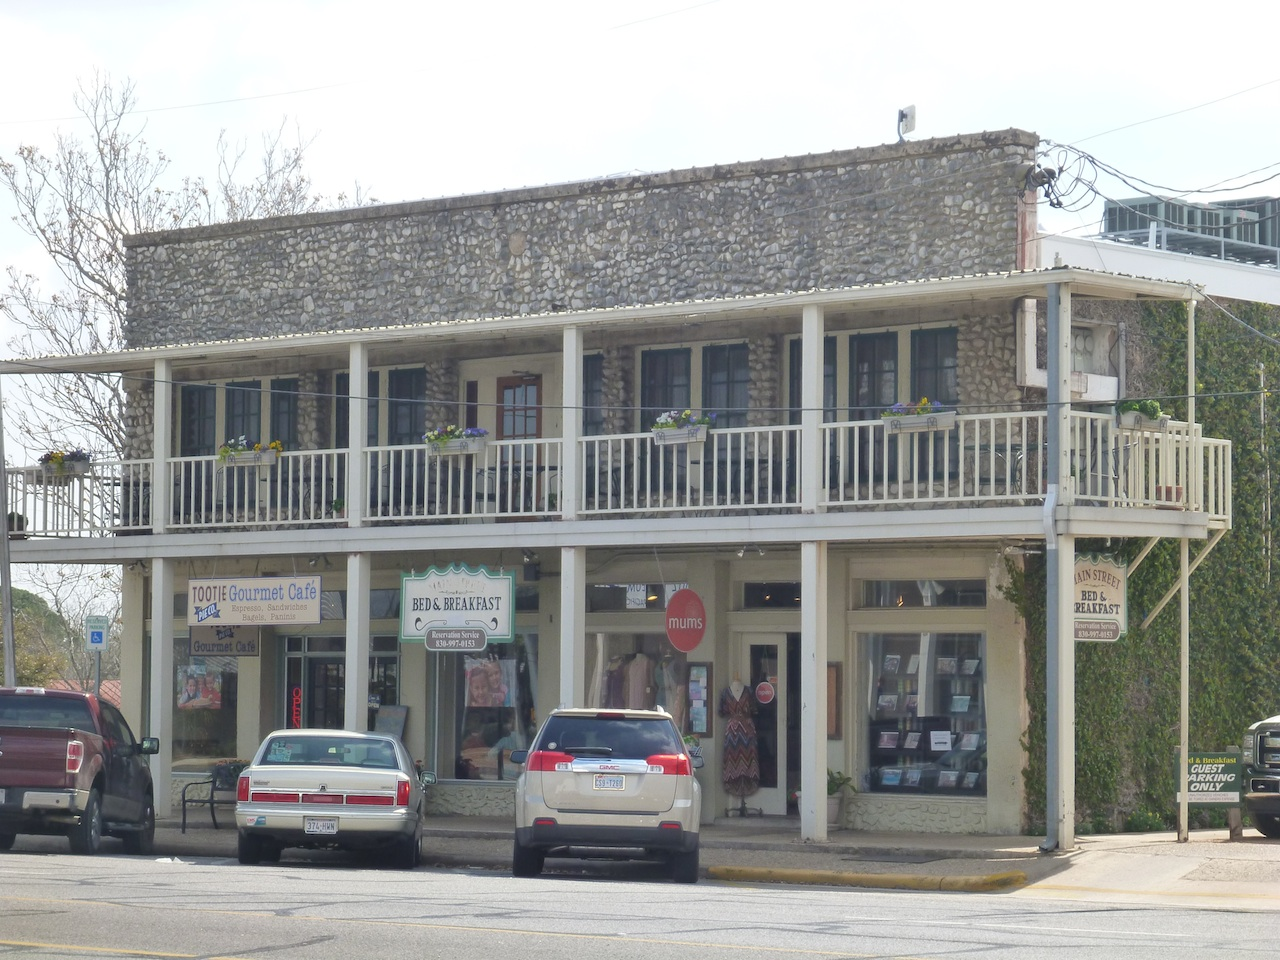 Fredericksburg, TX Main Street Buildings Are From The 1800's